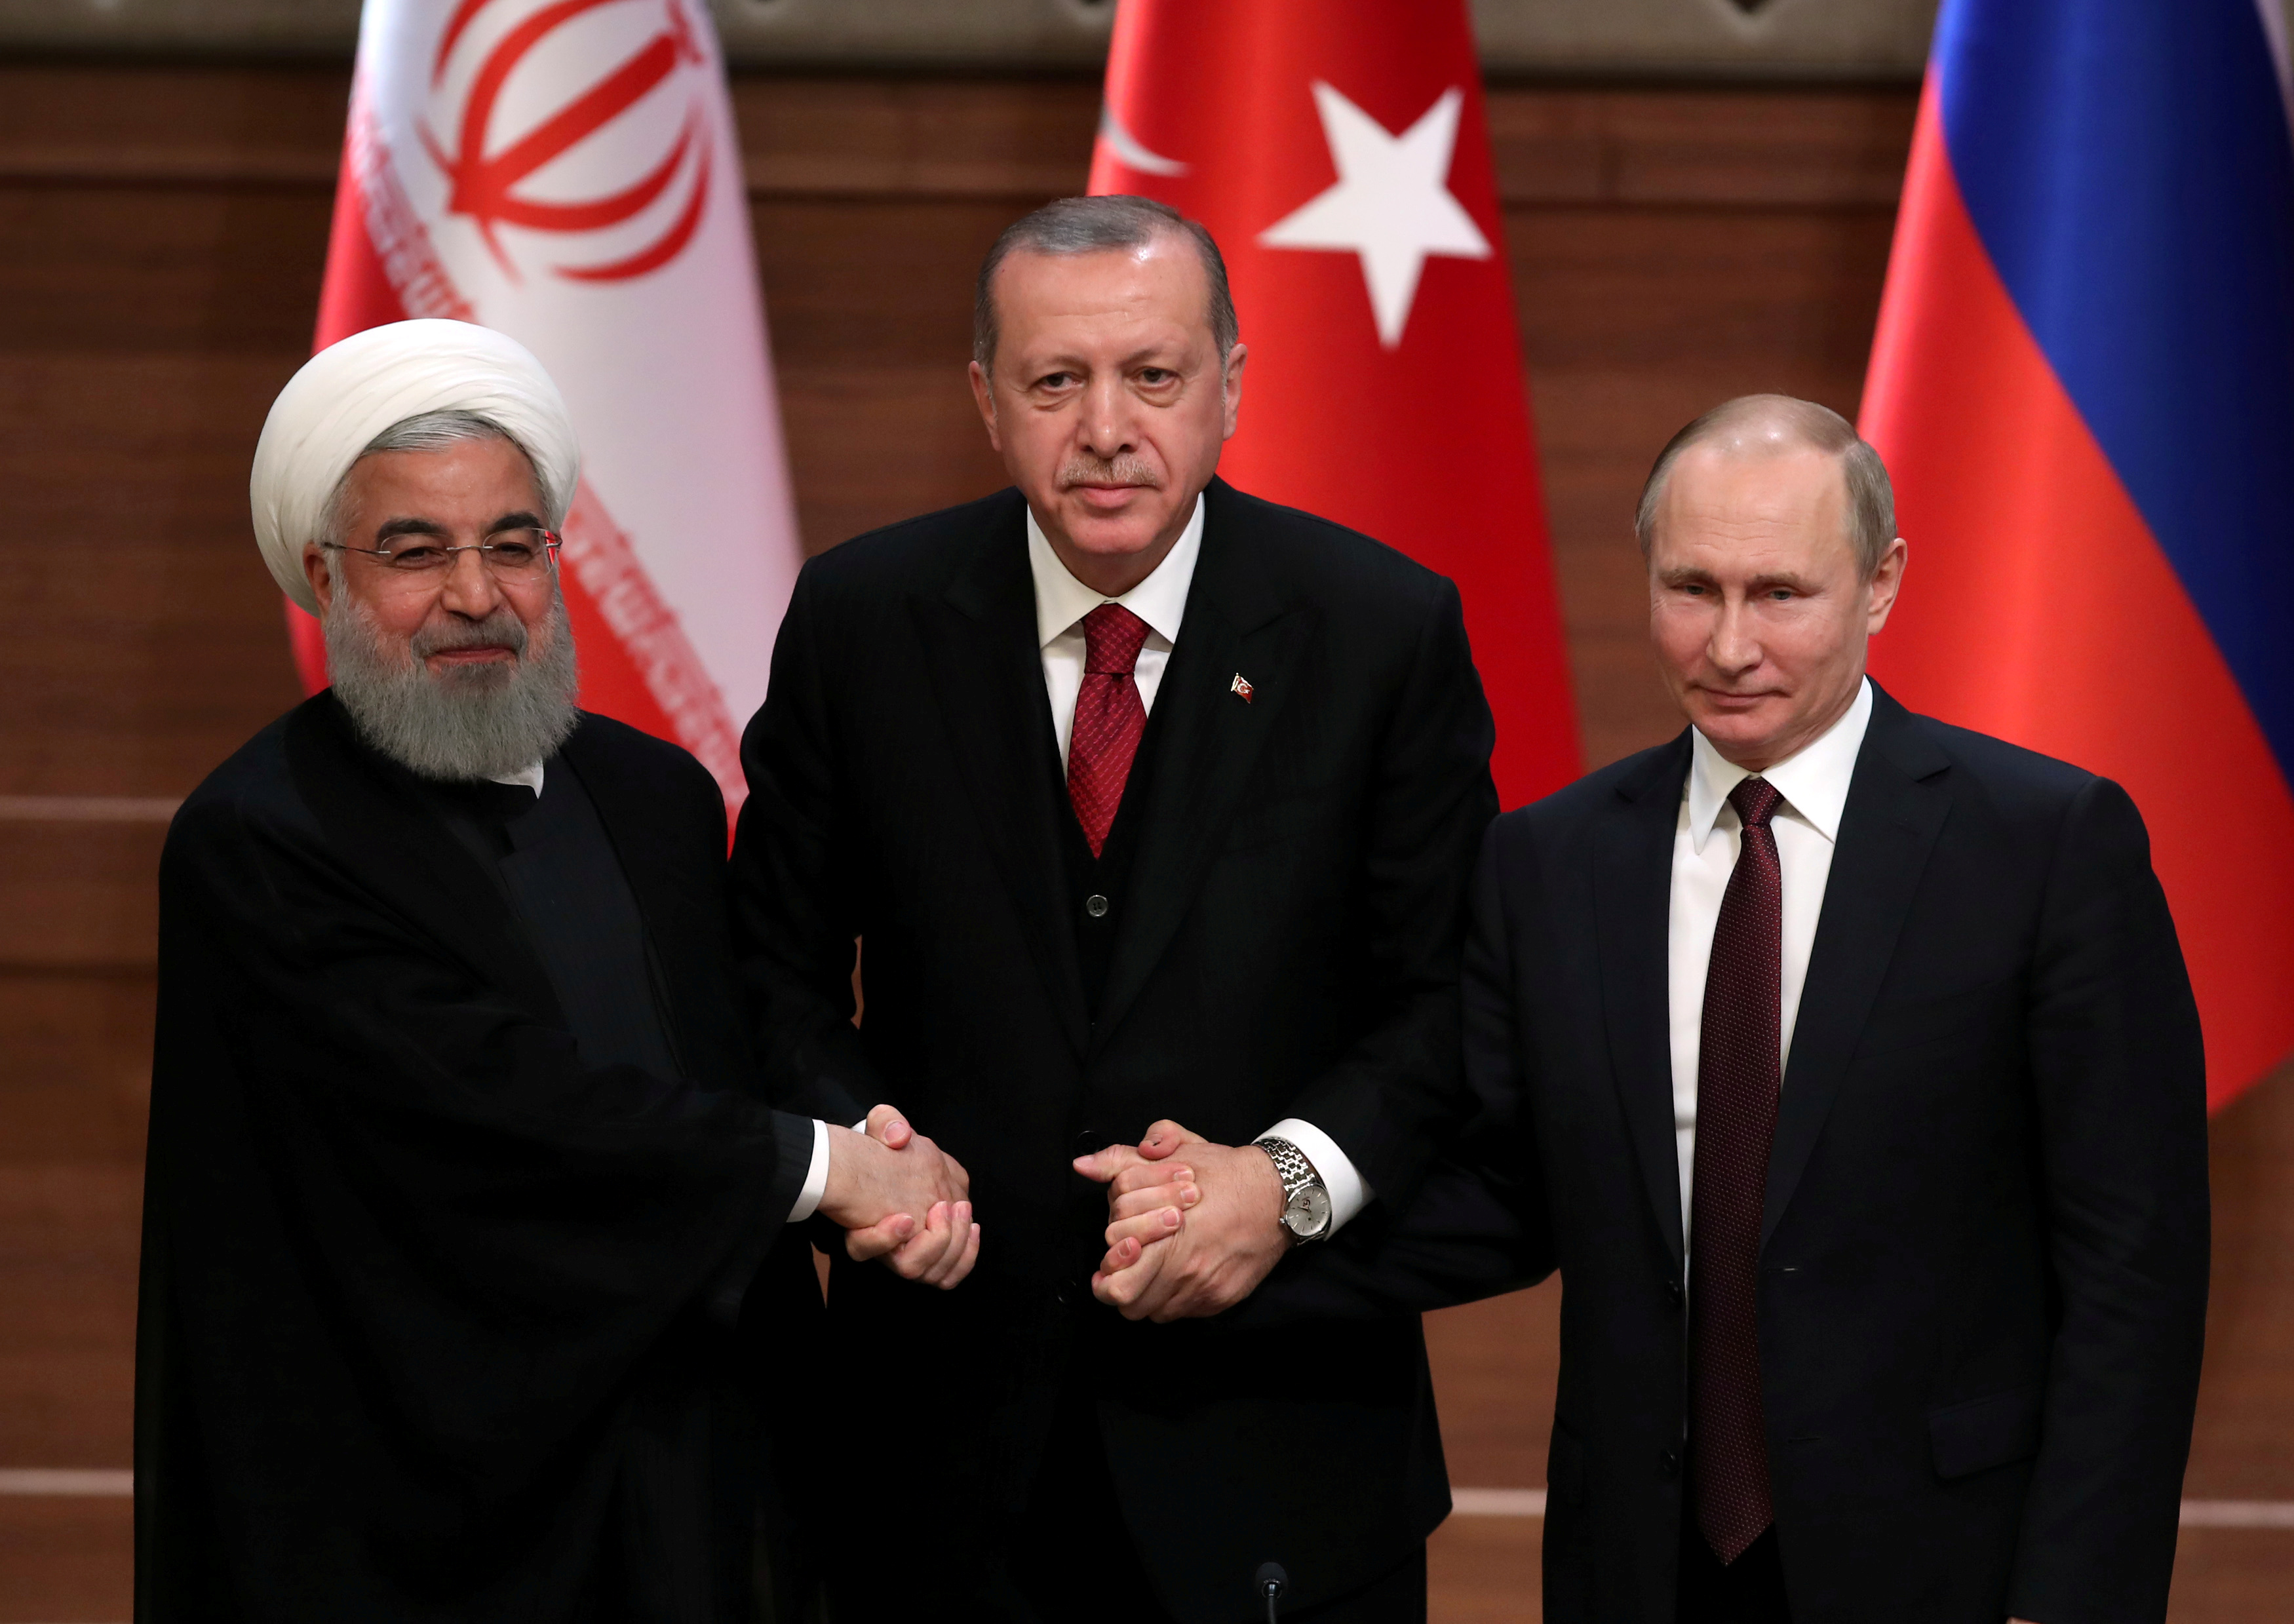 FILE PHOTO: Presidents Hassan Rouhani of Iran, Tayyip Erdogan of Turkey and Vladimir Putin of Russia hold a joint news conference after their meeting in Ankara, Turkey April 4, 2018. REUTERS/Umit Bektas/File Photo